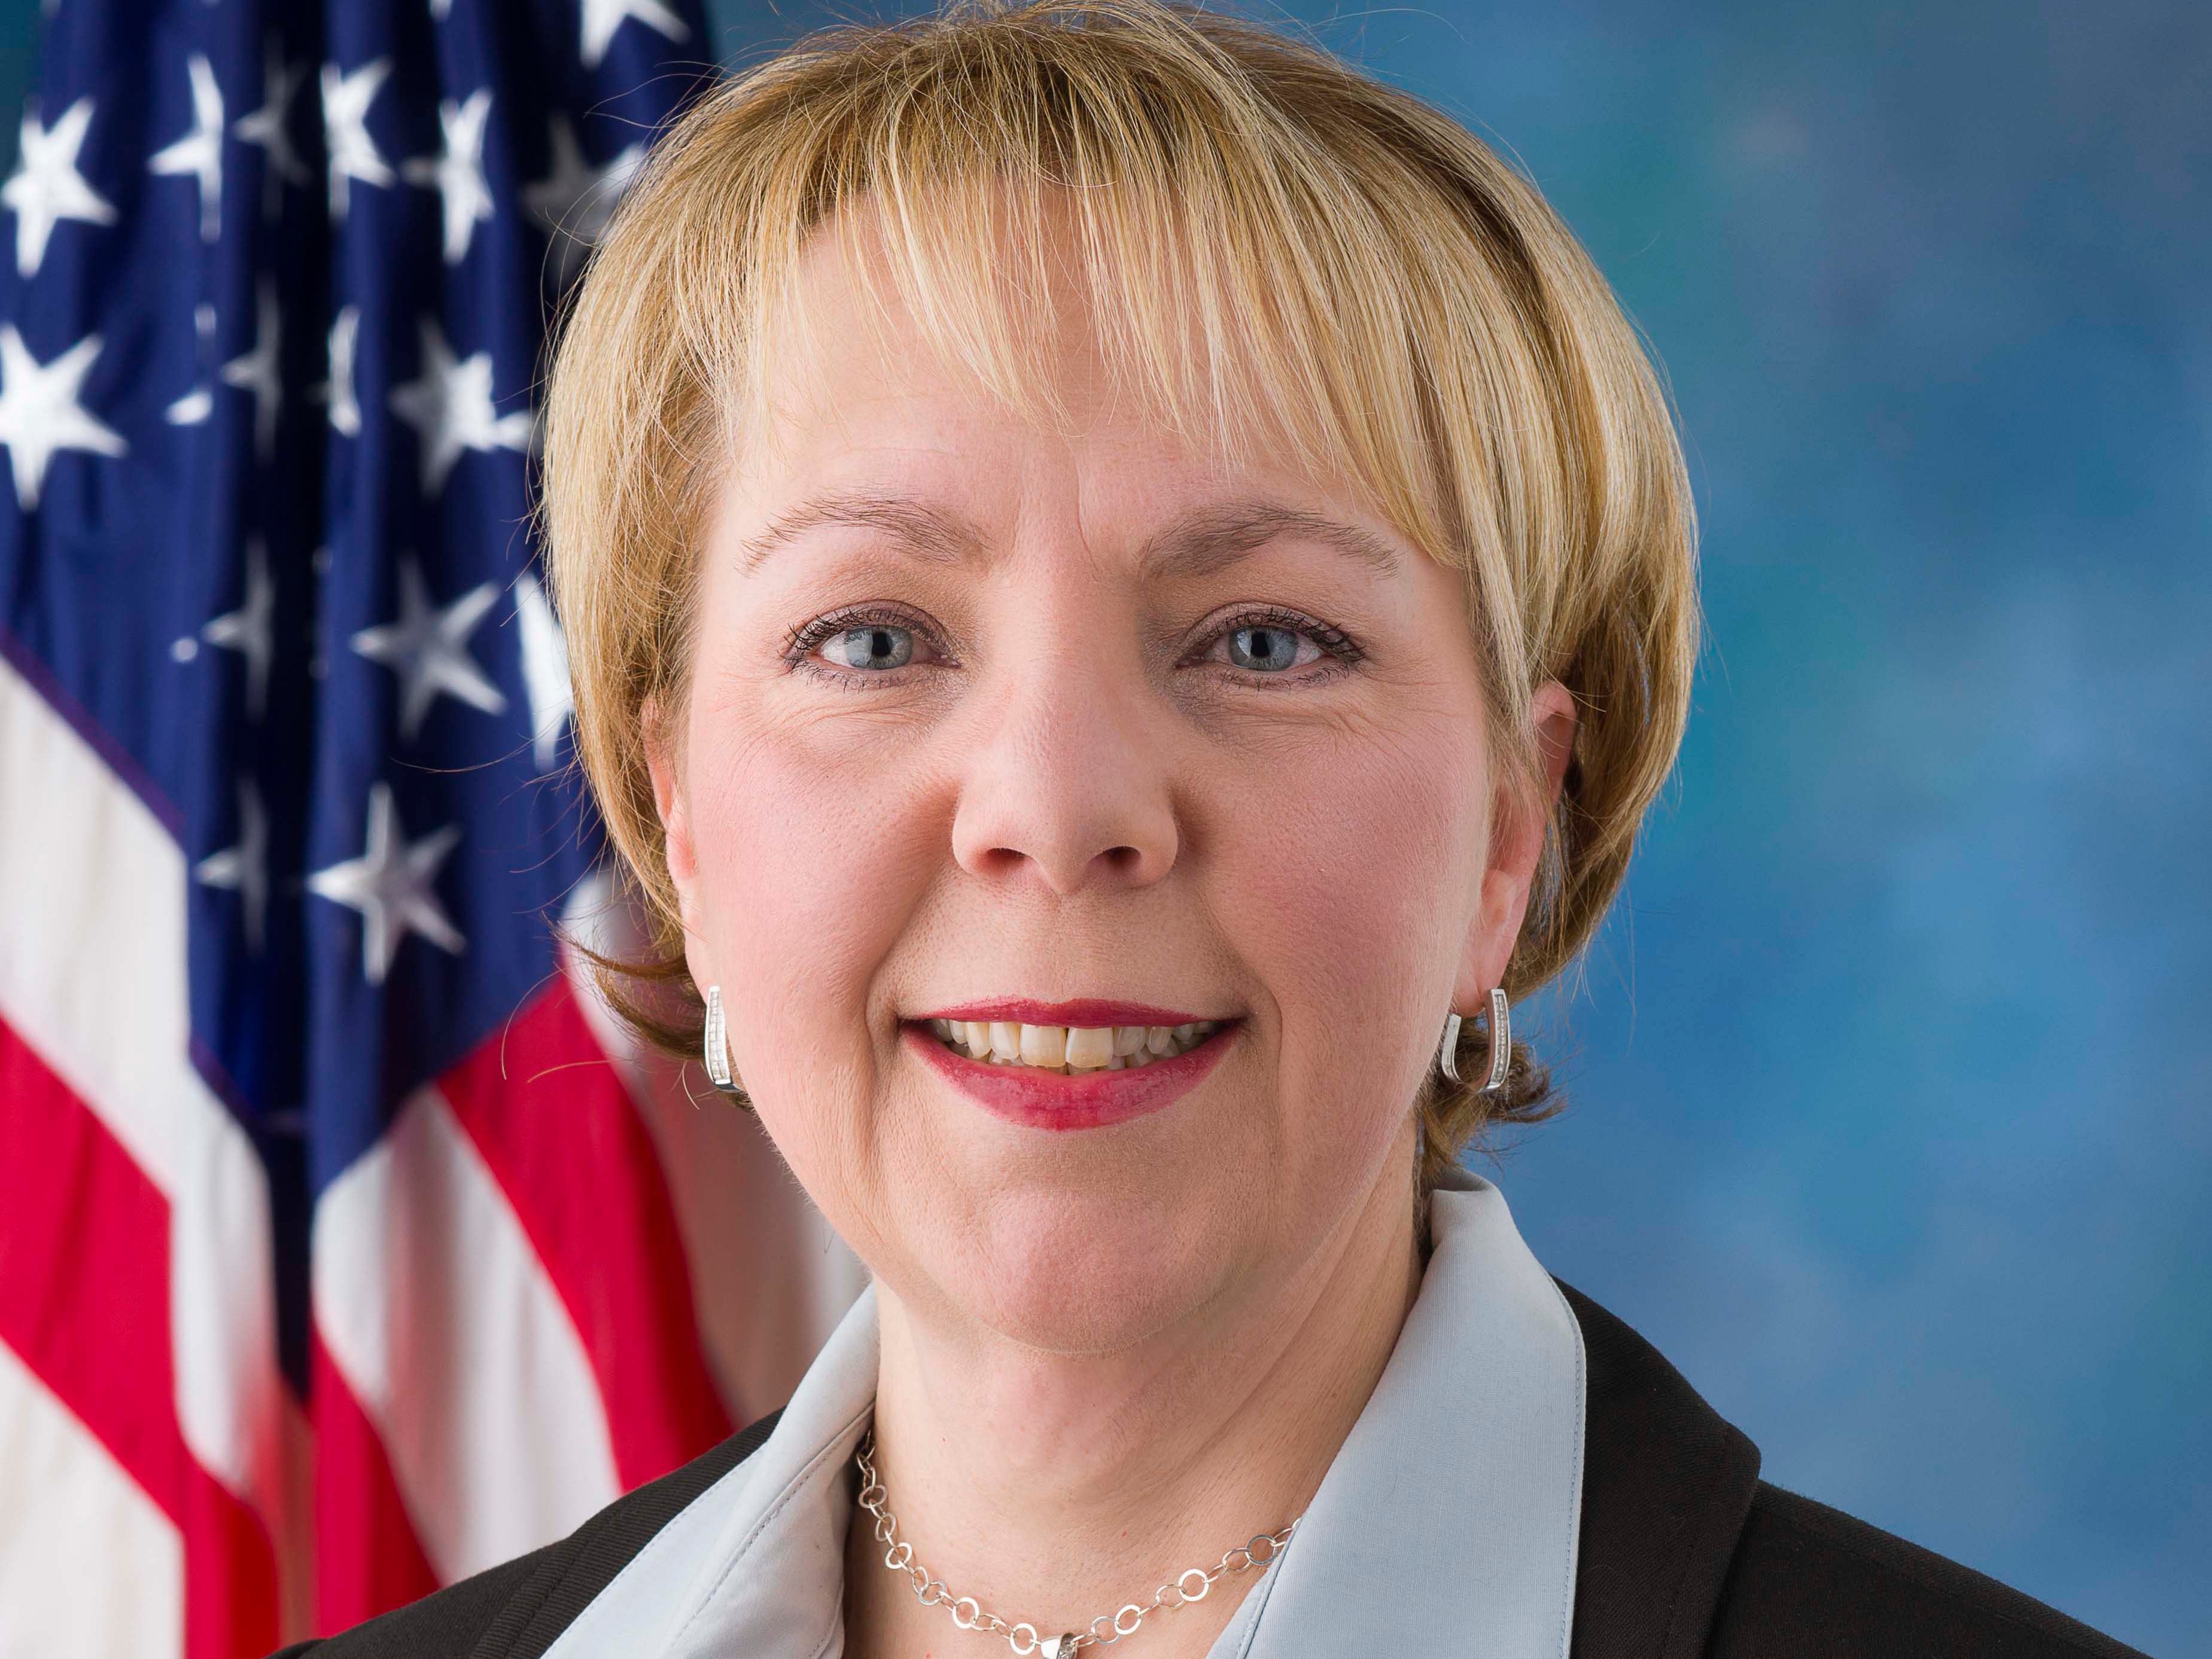 Gail Ennis - the Office of the Inspector General